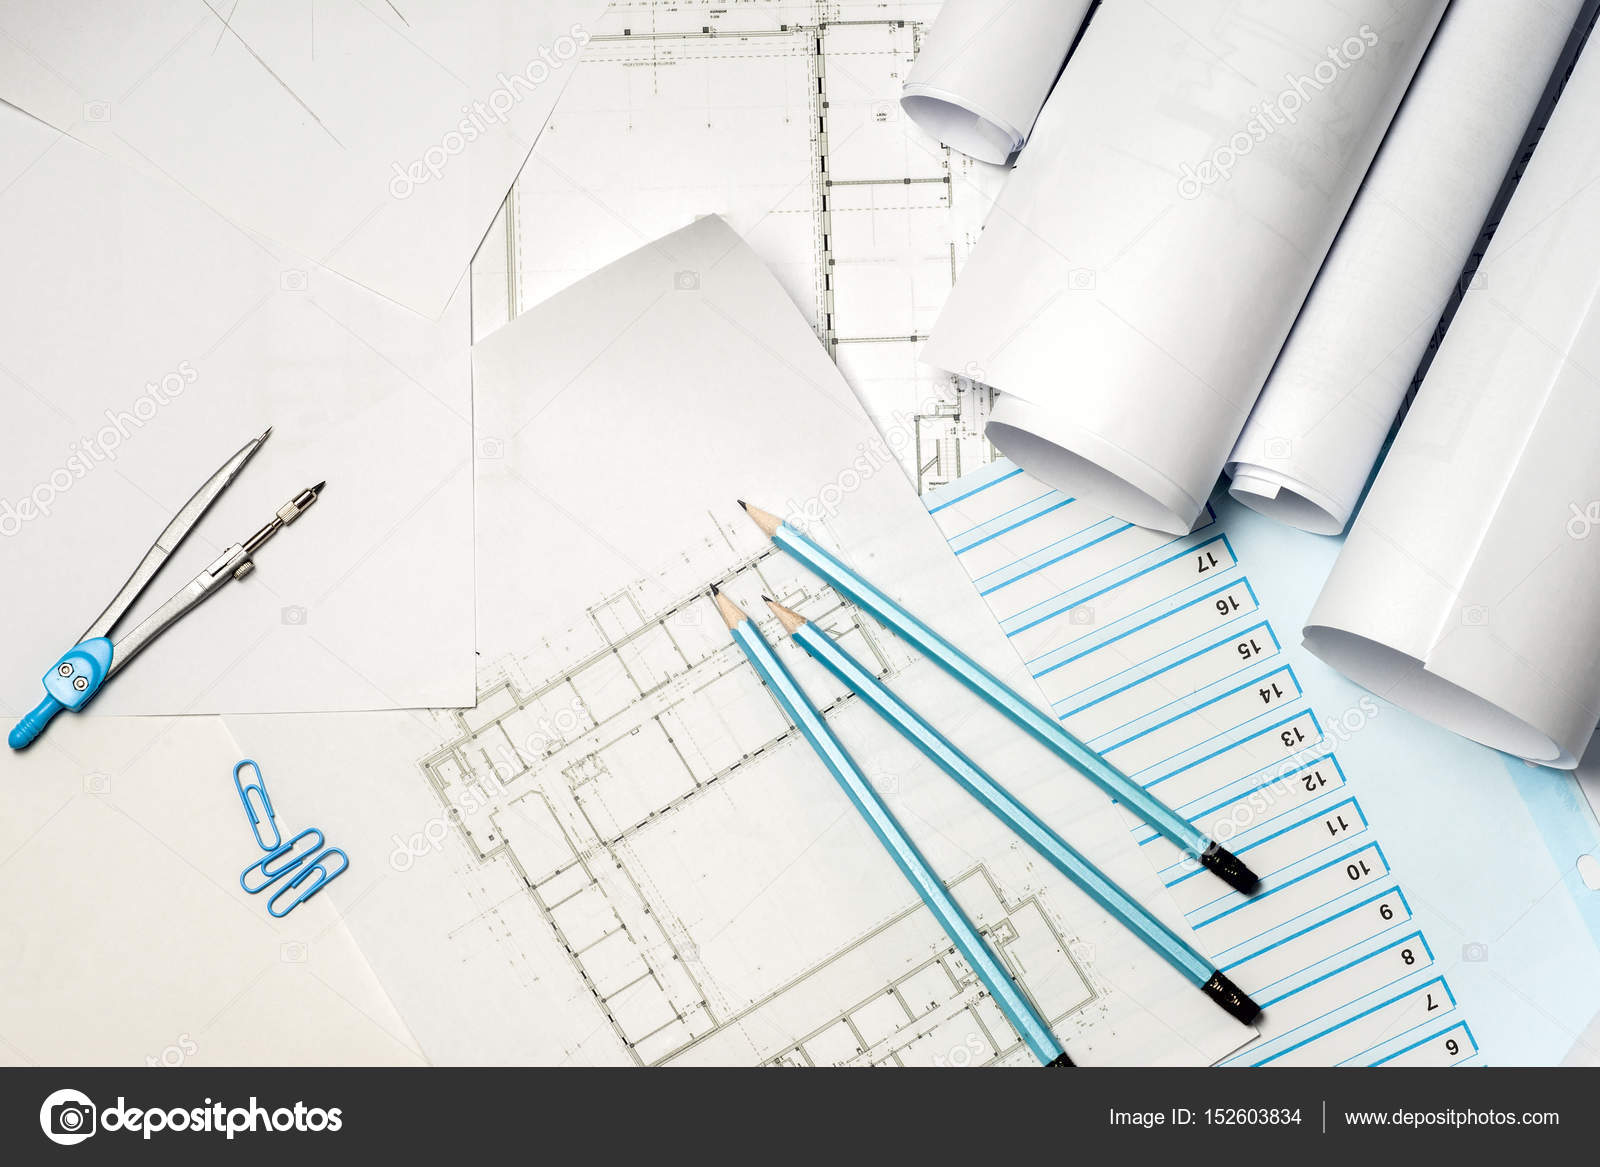 Architect working on blueprint stock photo vtmila 152603834 architects workplace architectural project blueprints ruler and divider compass construction concept engineering tools top view photo by vtmila malvernweather Gallery